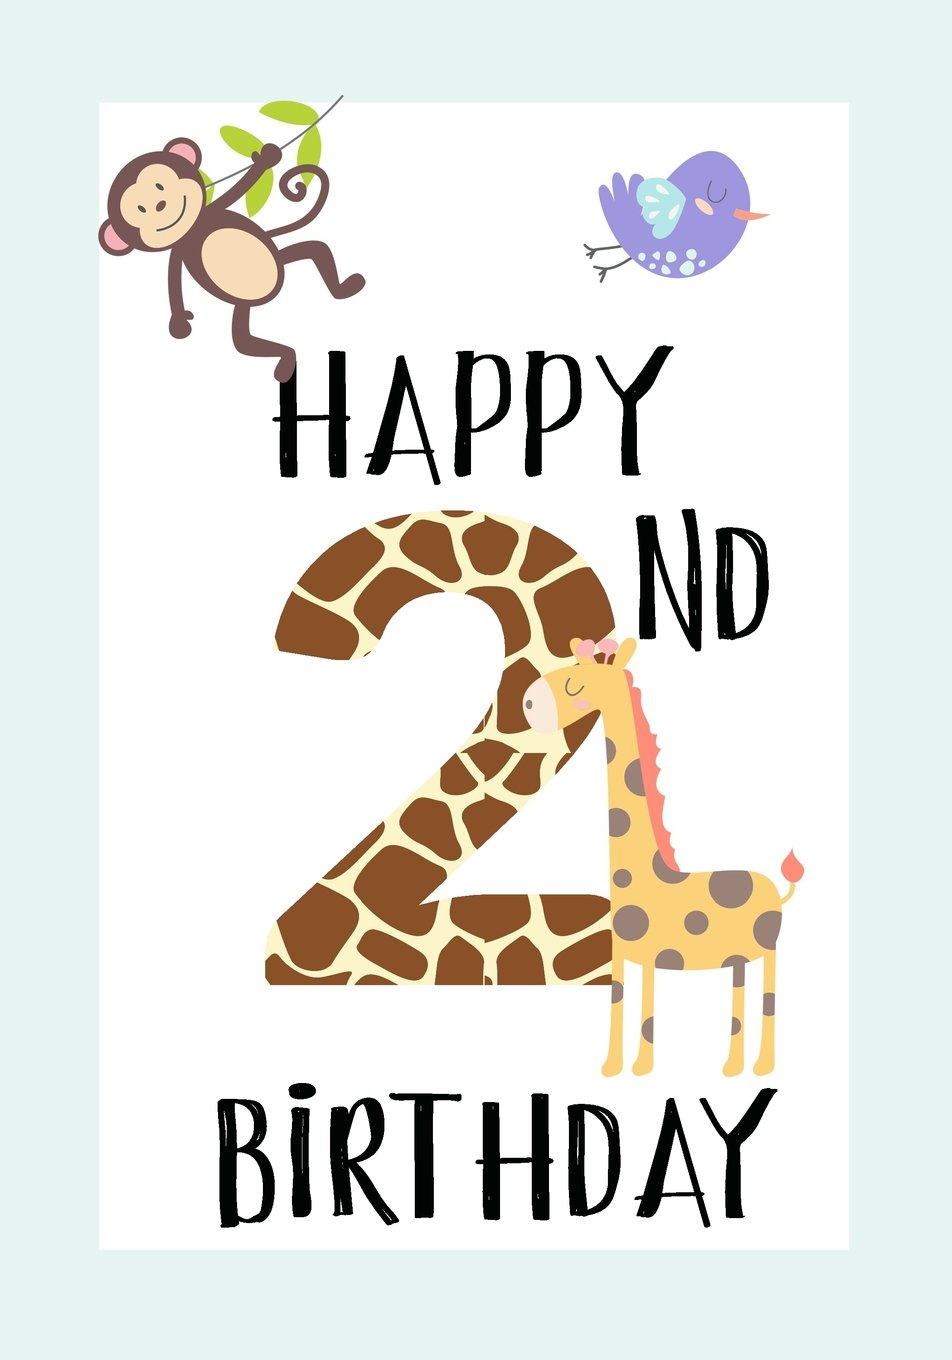 Happy 2nd Birthday: Birthday Books For Boys, Birthday Journal Notebook For 2 Year Old For Journaling & Doodling, 7 x 10, (Birthday Keepsake Book) Paperback – June 3, 2017 Dartan Creations 1547117079 Blank Books/Journals Non-Classifiable